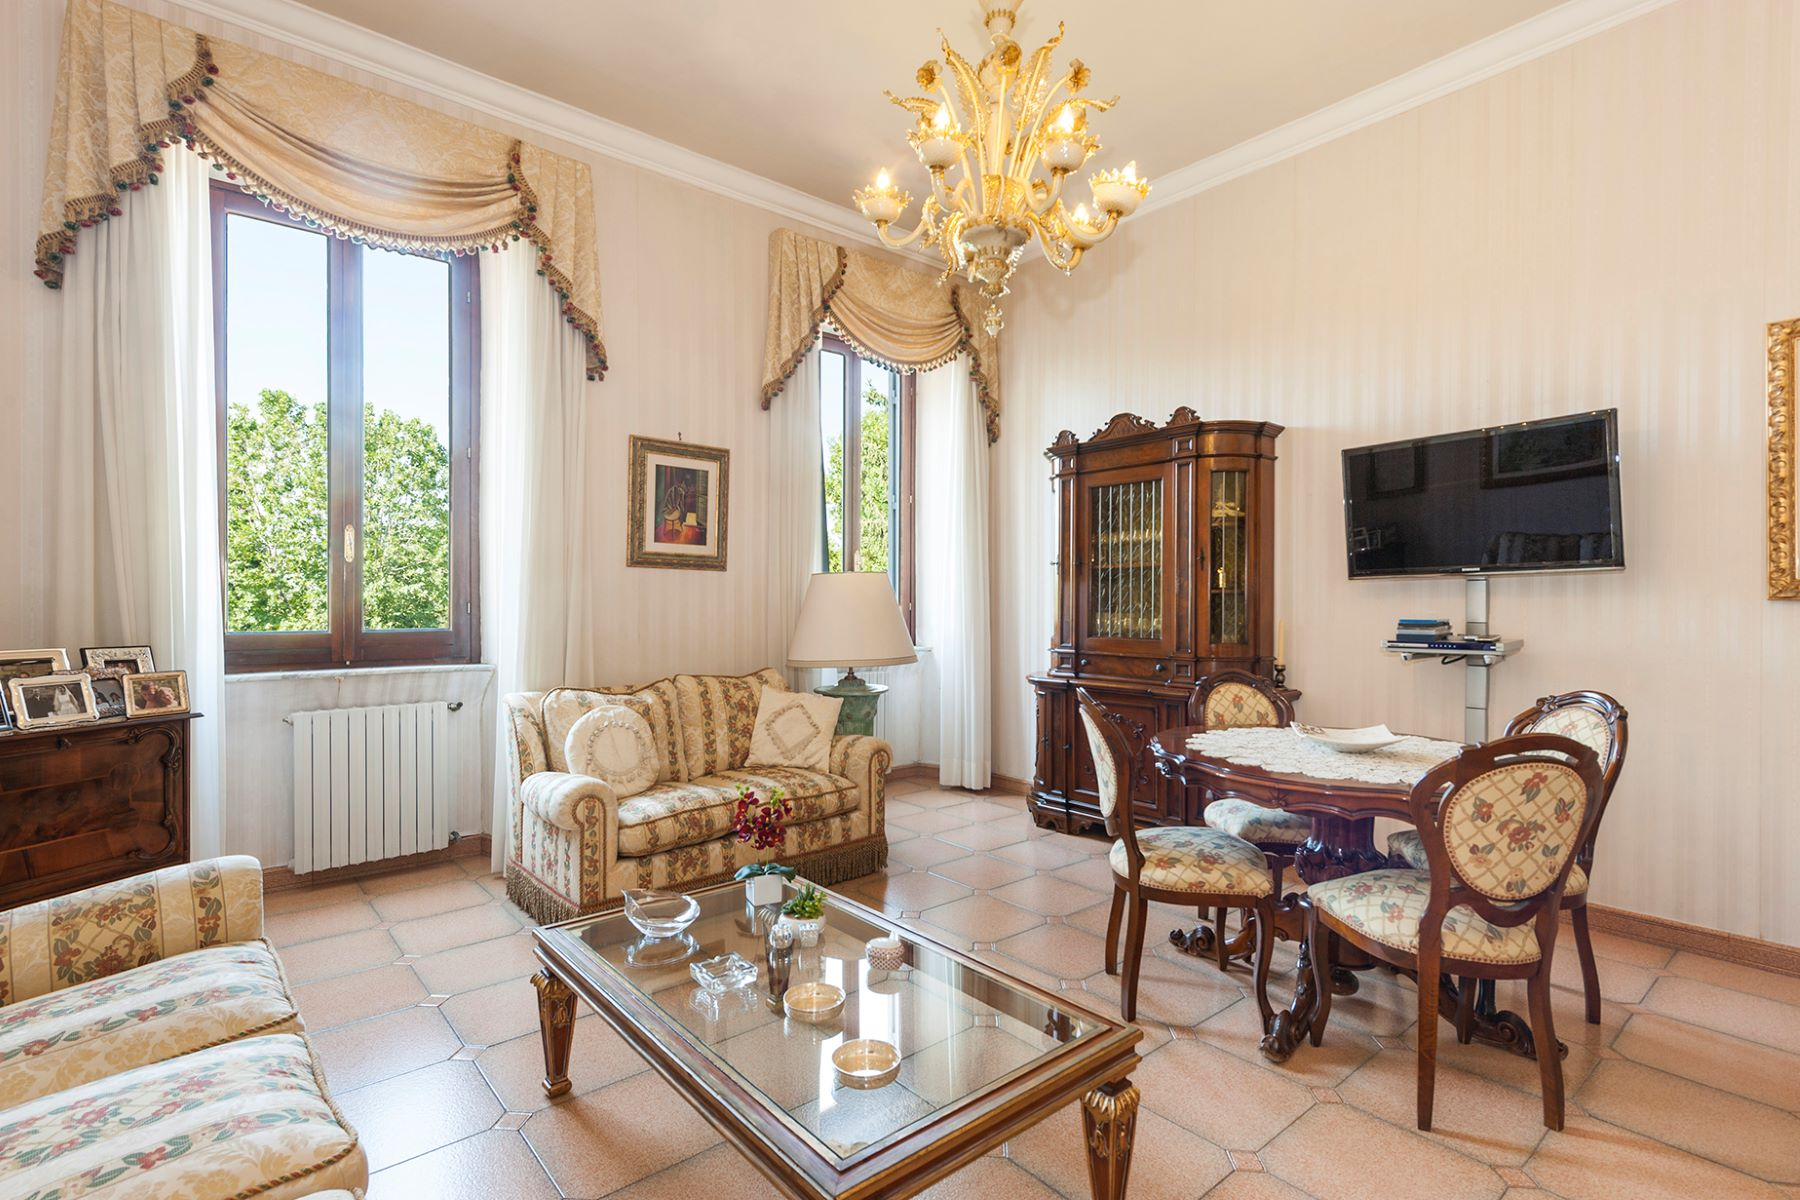 Apartment for Sale at Apartment in an exclusive building Ariccia, Rome Italy